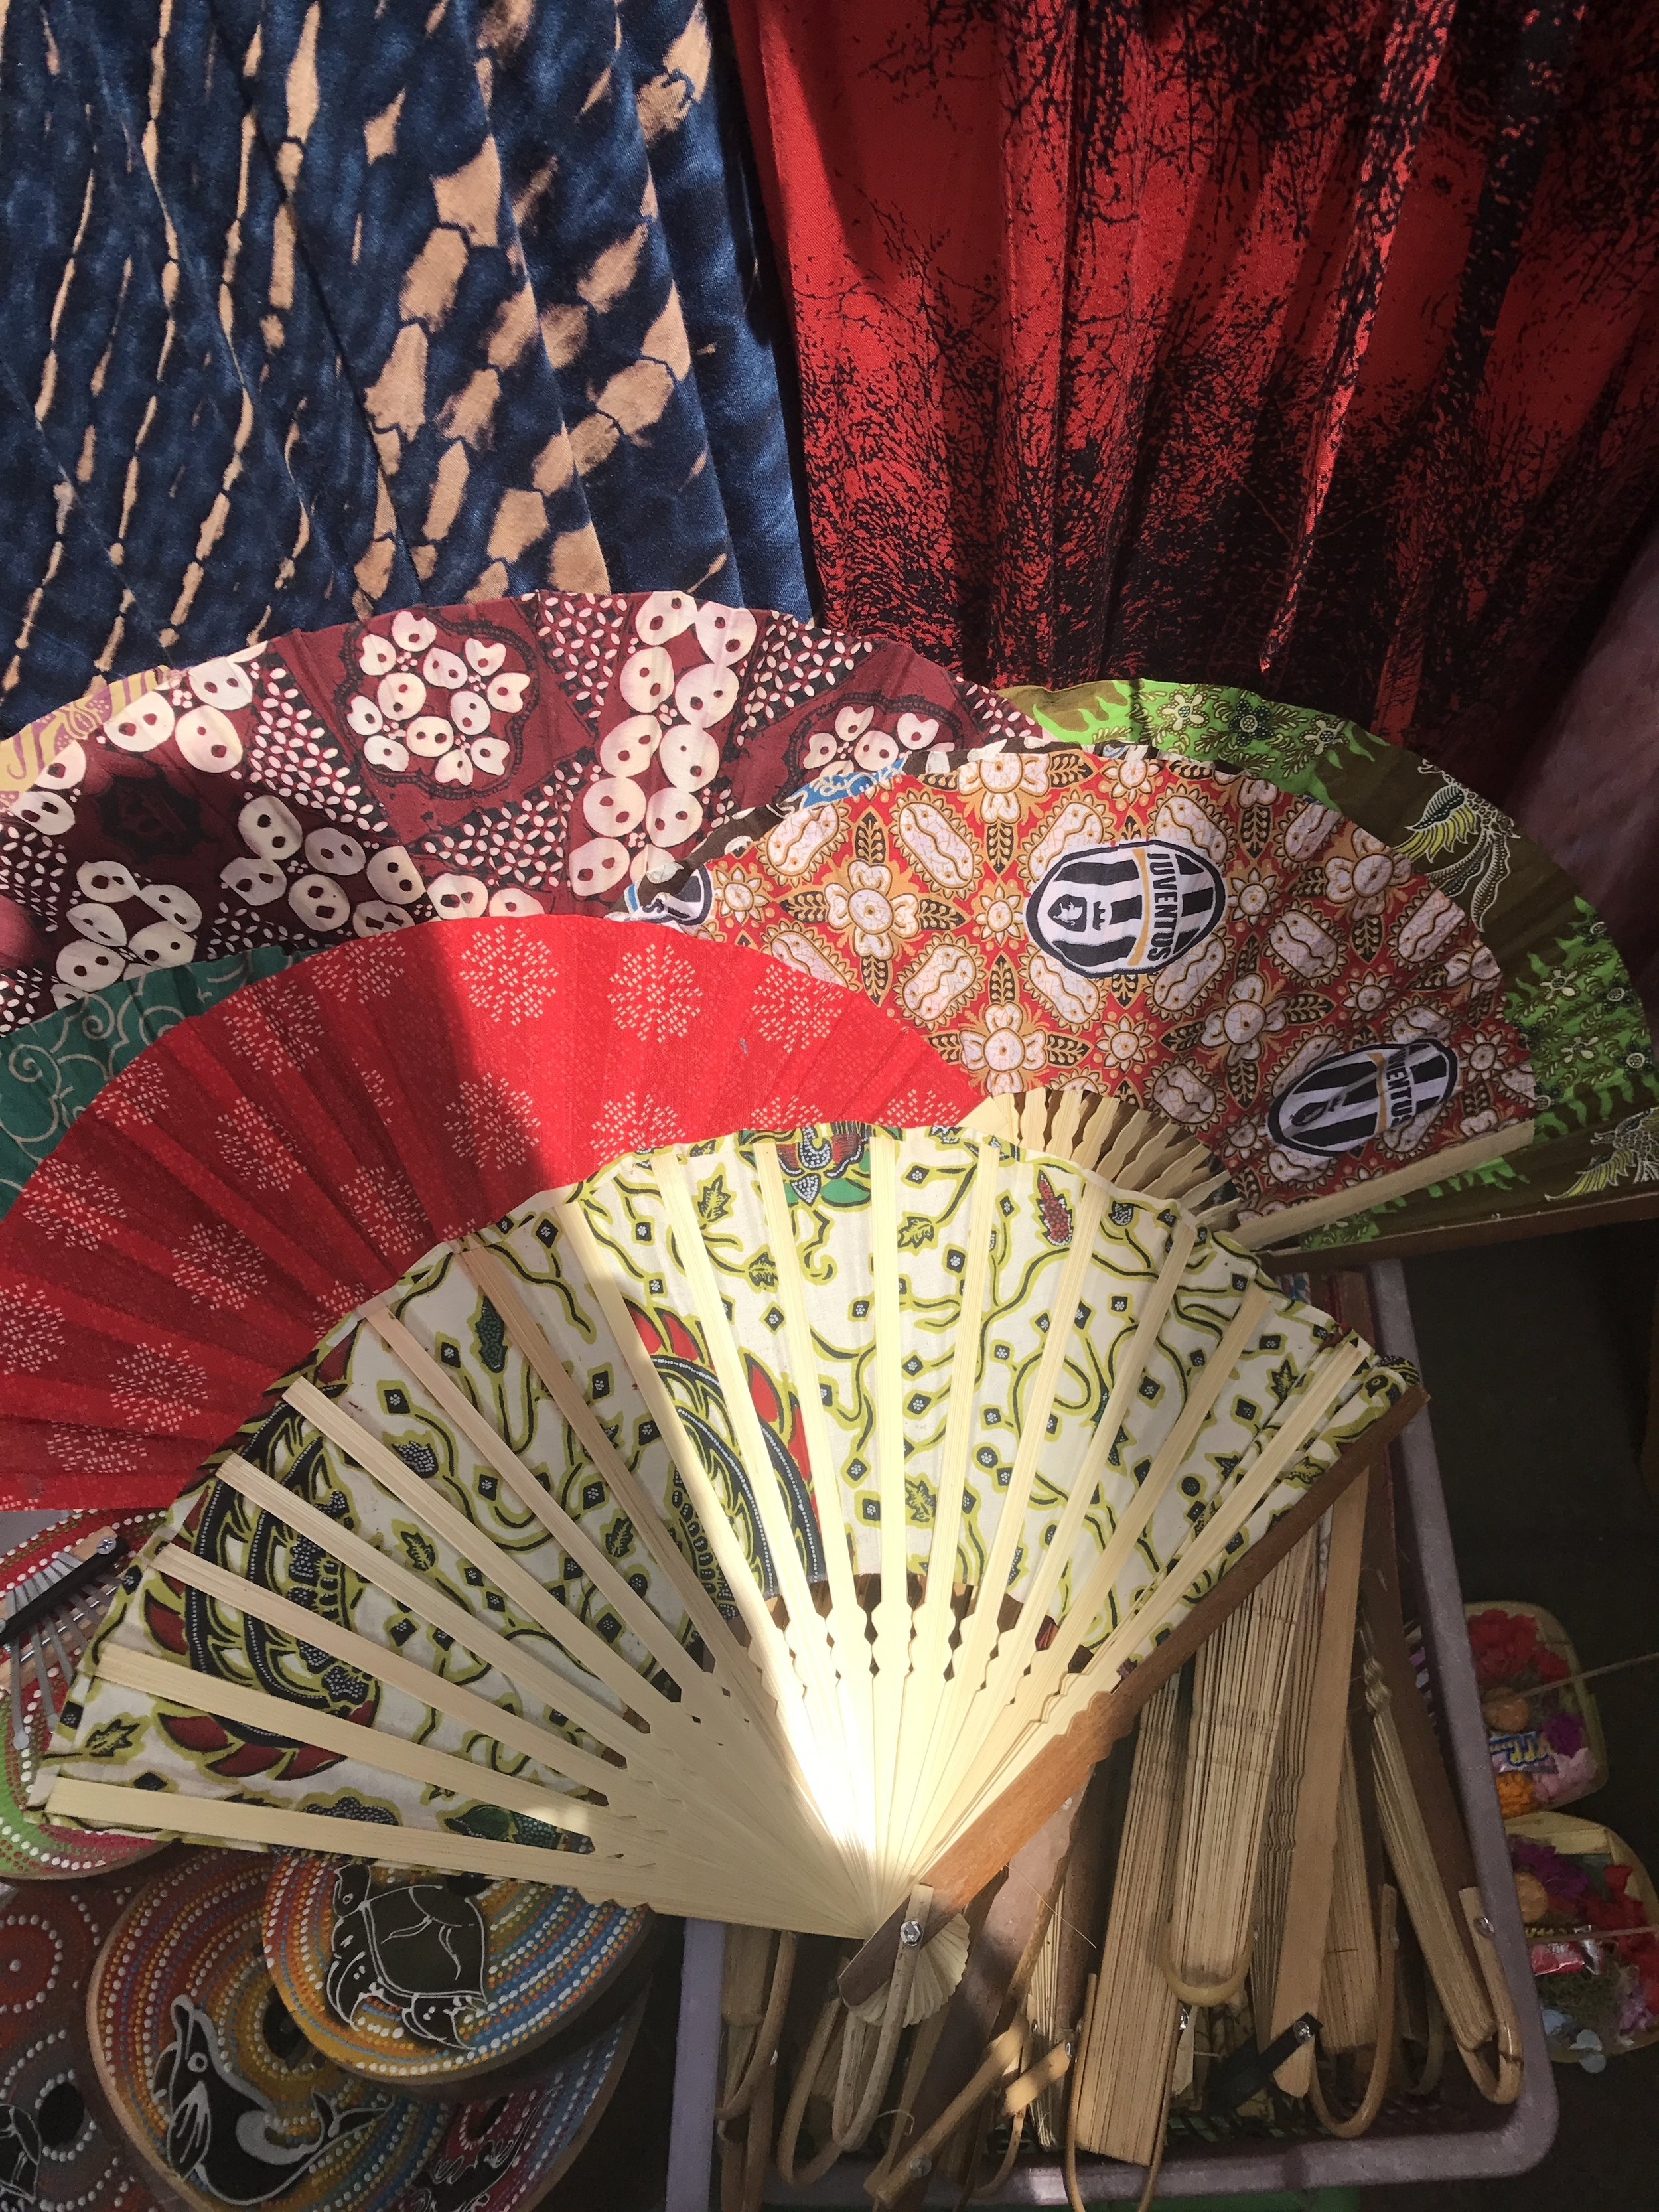 These fans definitely helped to block the heat of the Bali sun.